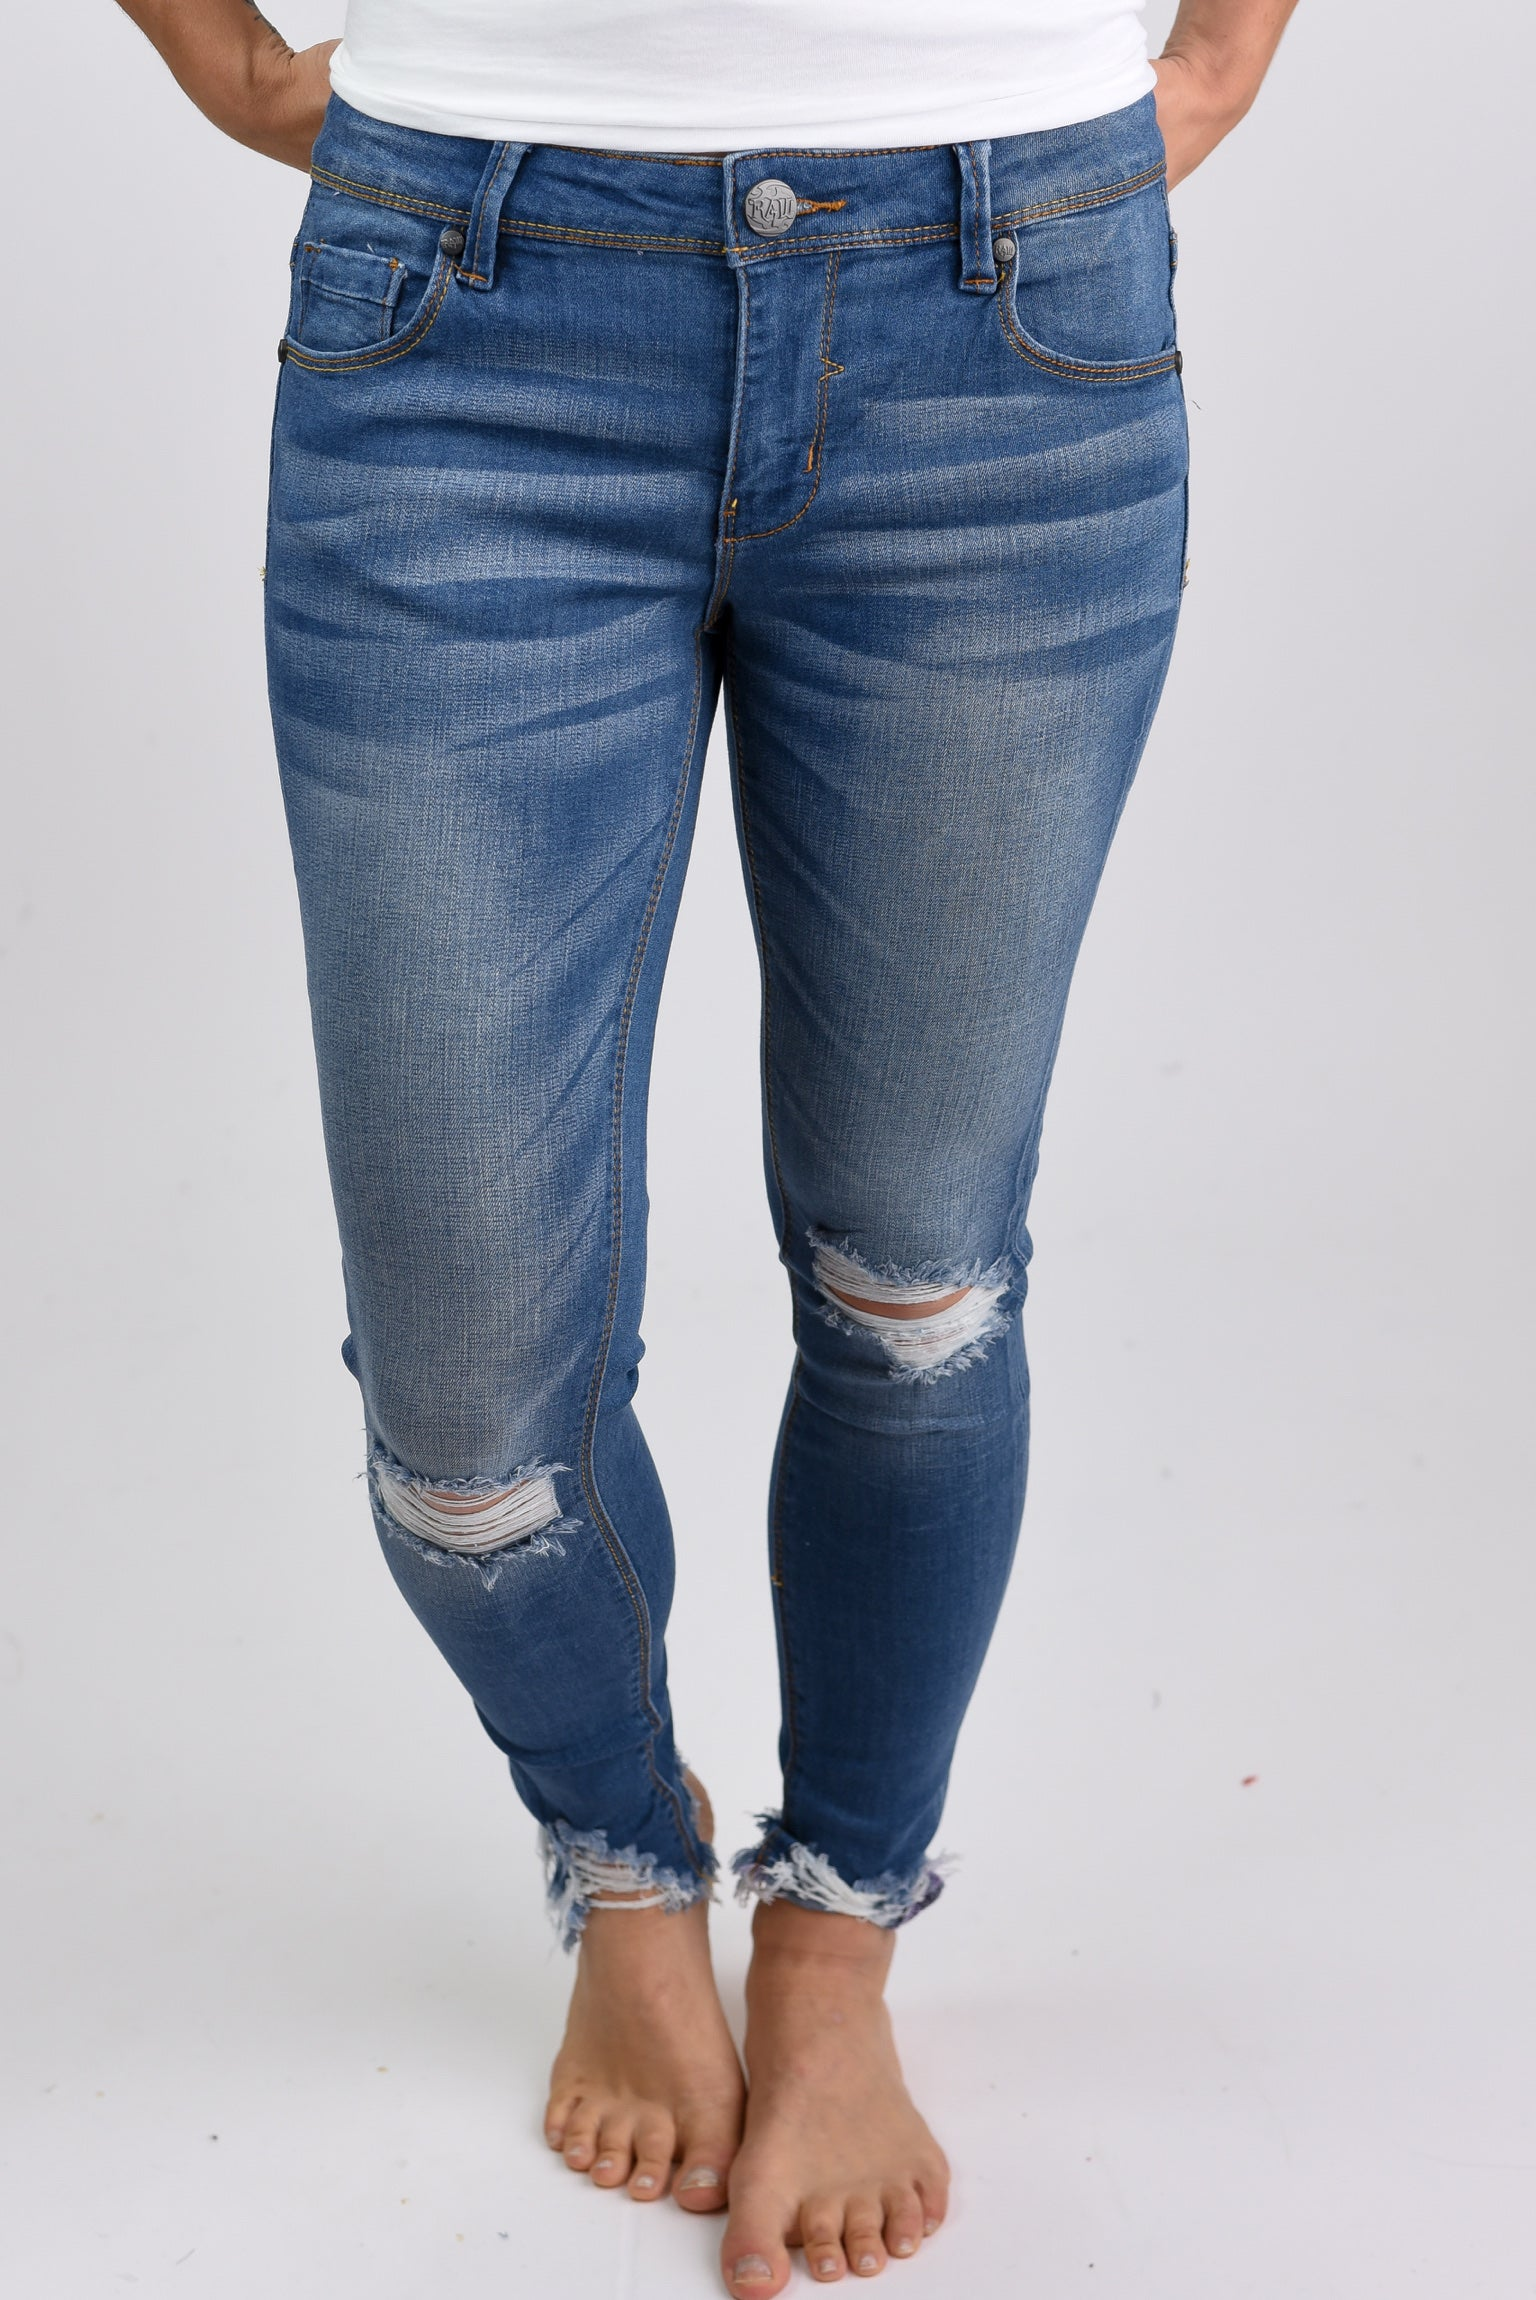 Learn To Let Go Light Wash Distressed Skinny Jeans